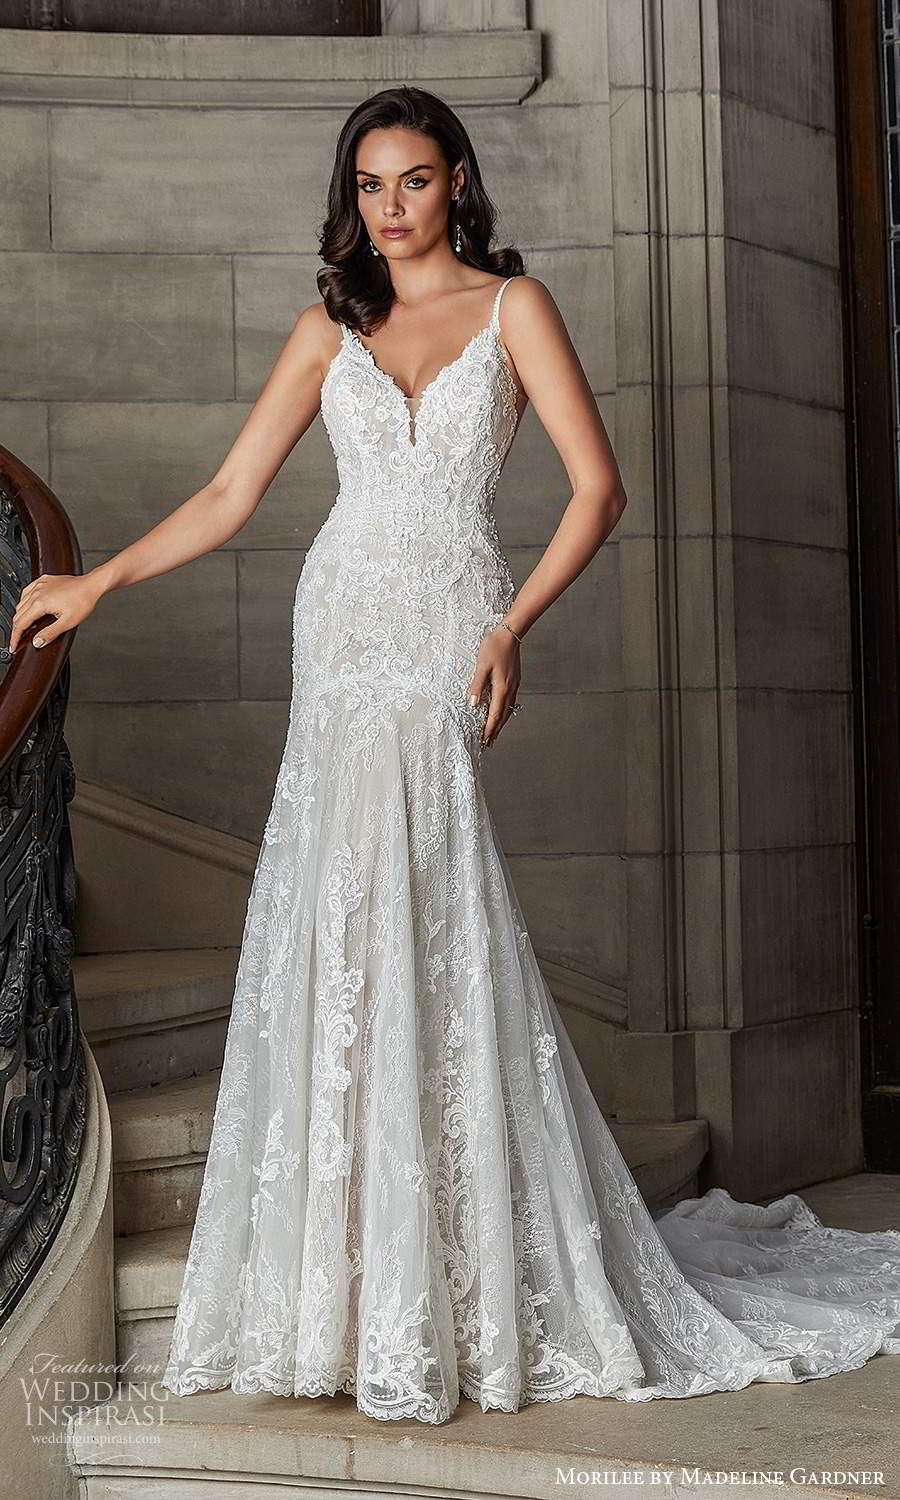 morilee madeline gardner spring 2022 bridal sleeveless straps sweetheart neckline fully embellished sheath wedding dress chapel train (5) mv